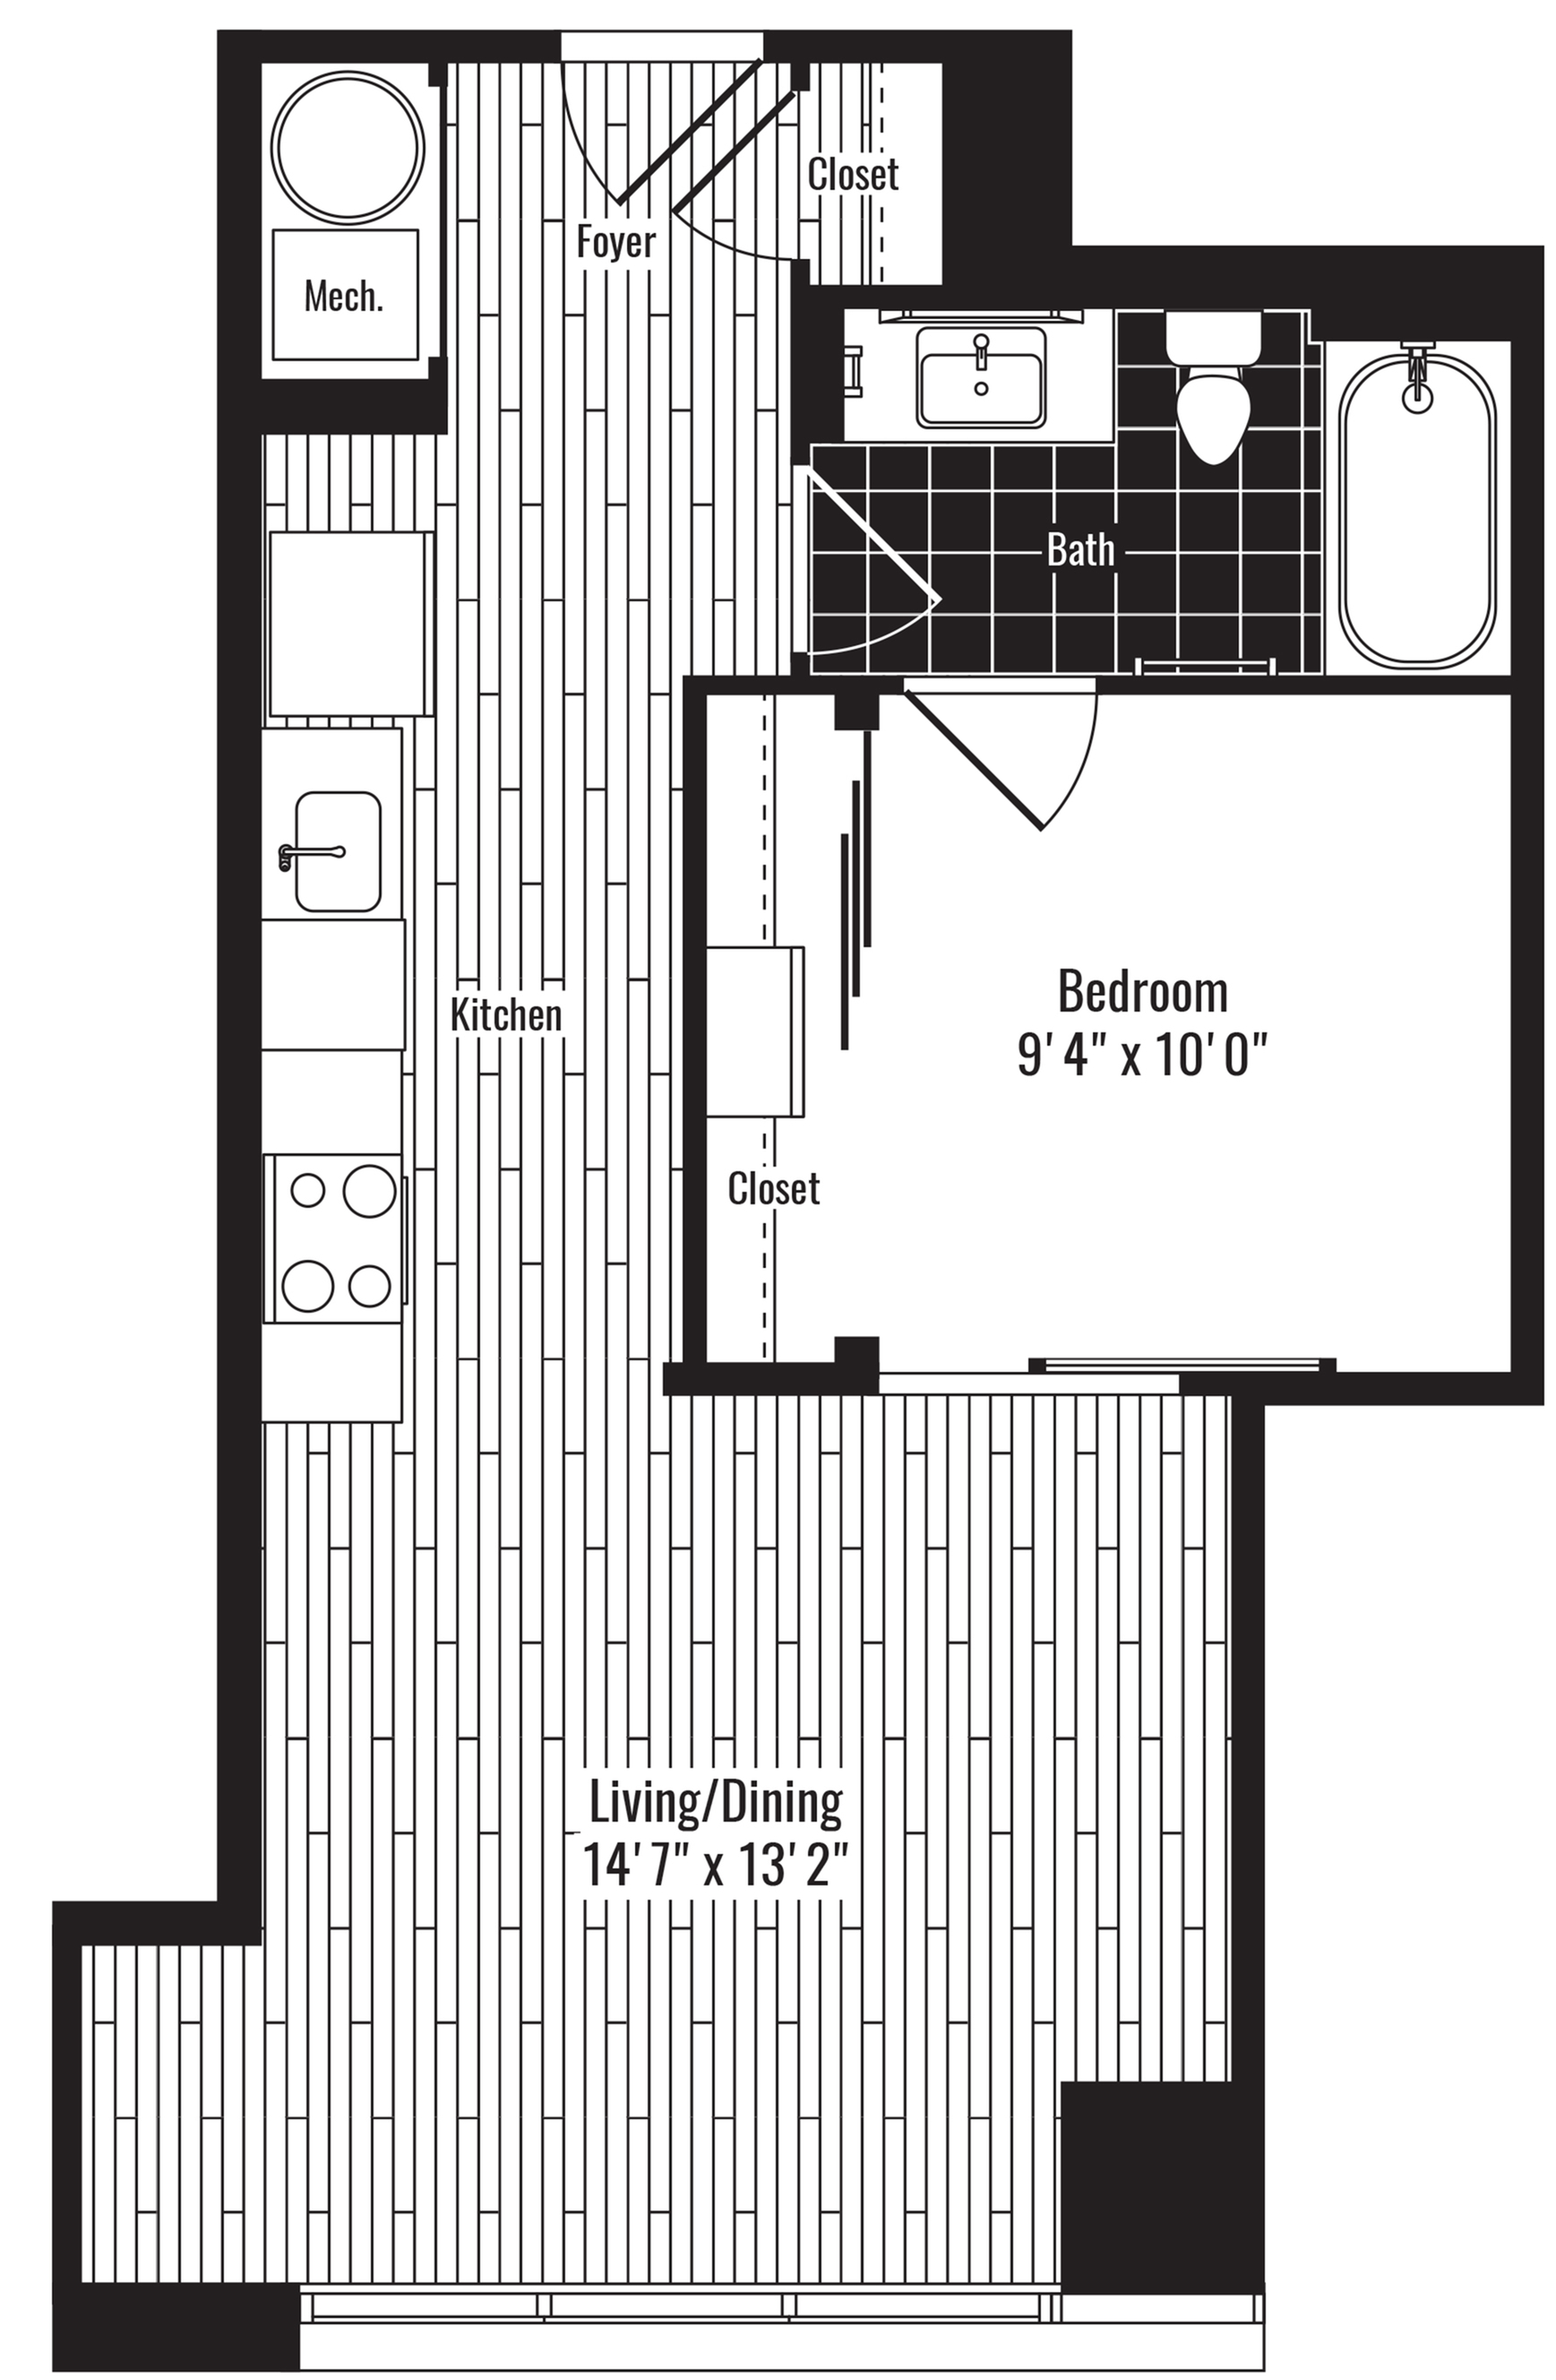 585 square foot one bedroom one bath with offset living room apartment floorplan image